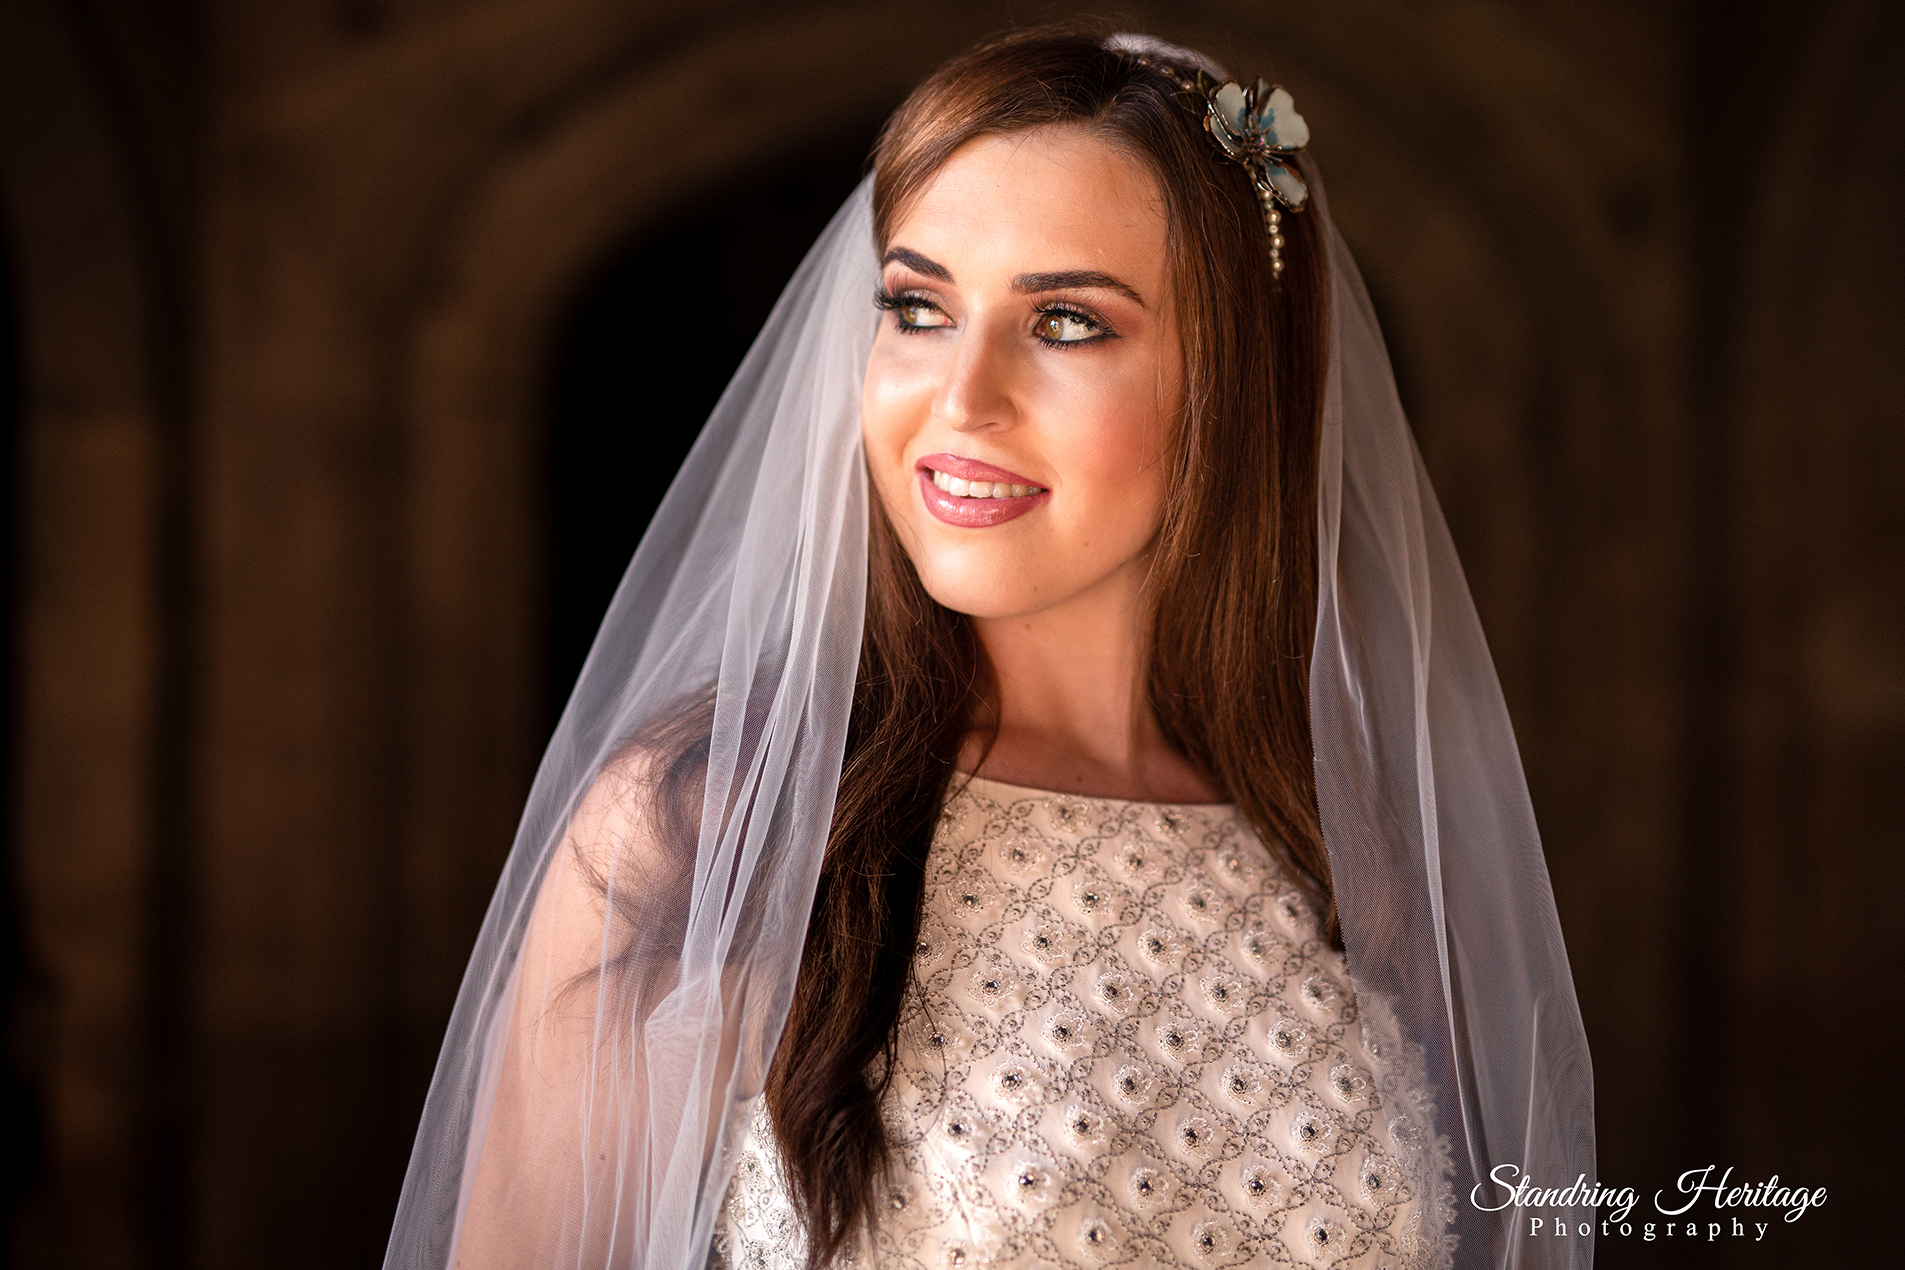 chethams-wedding-photography-manchester-1